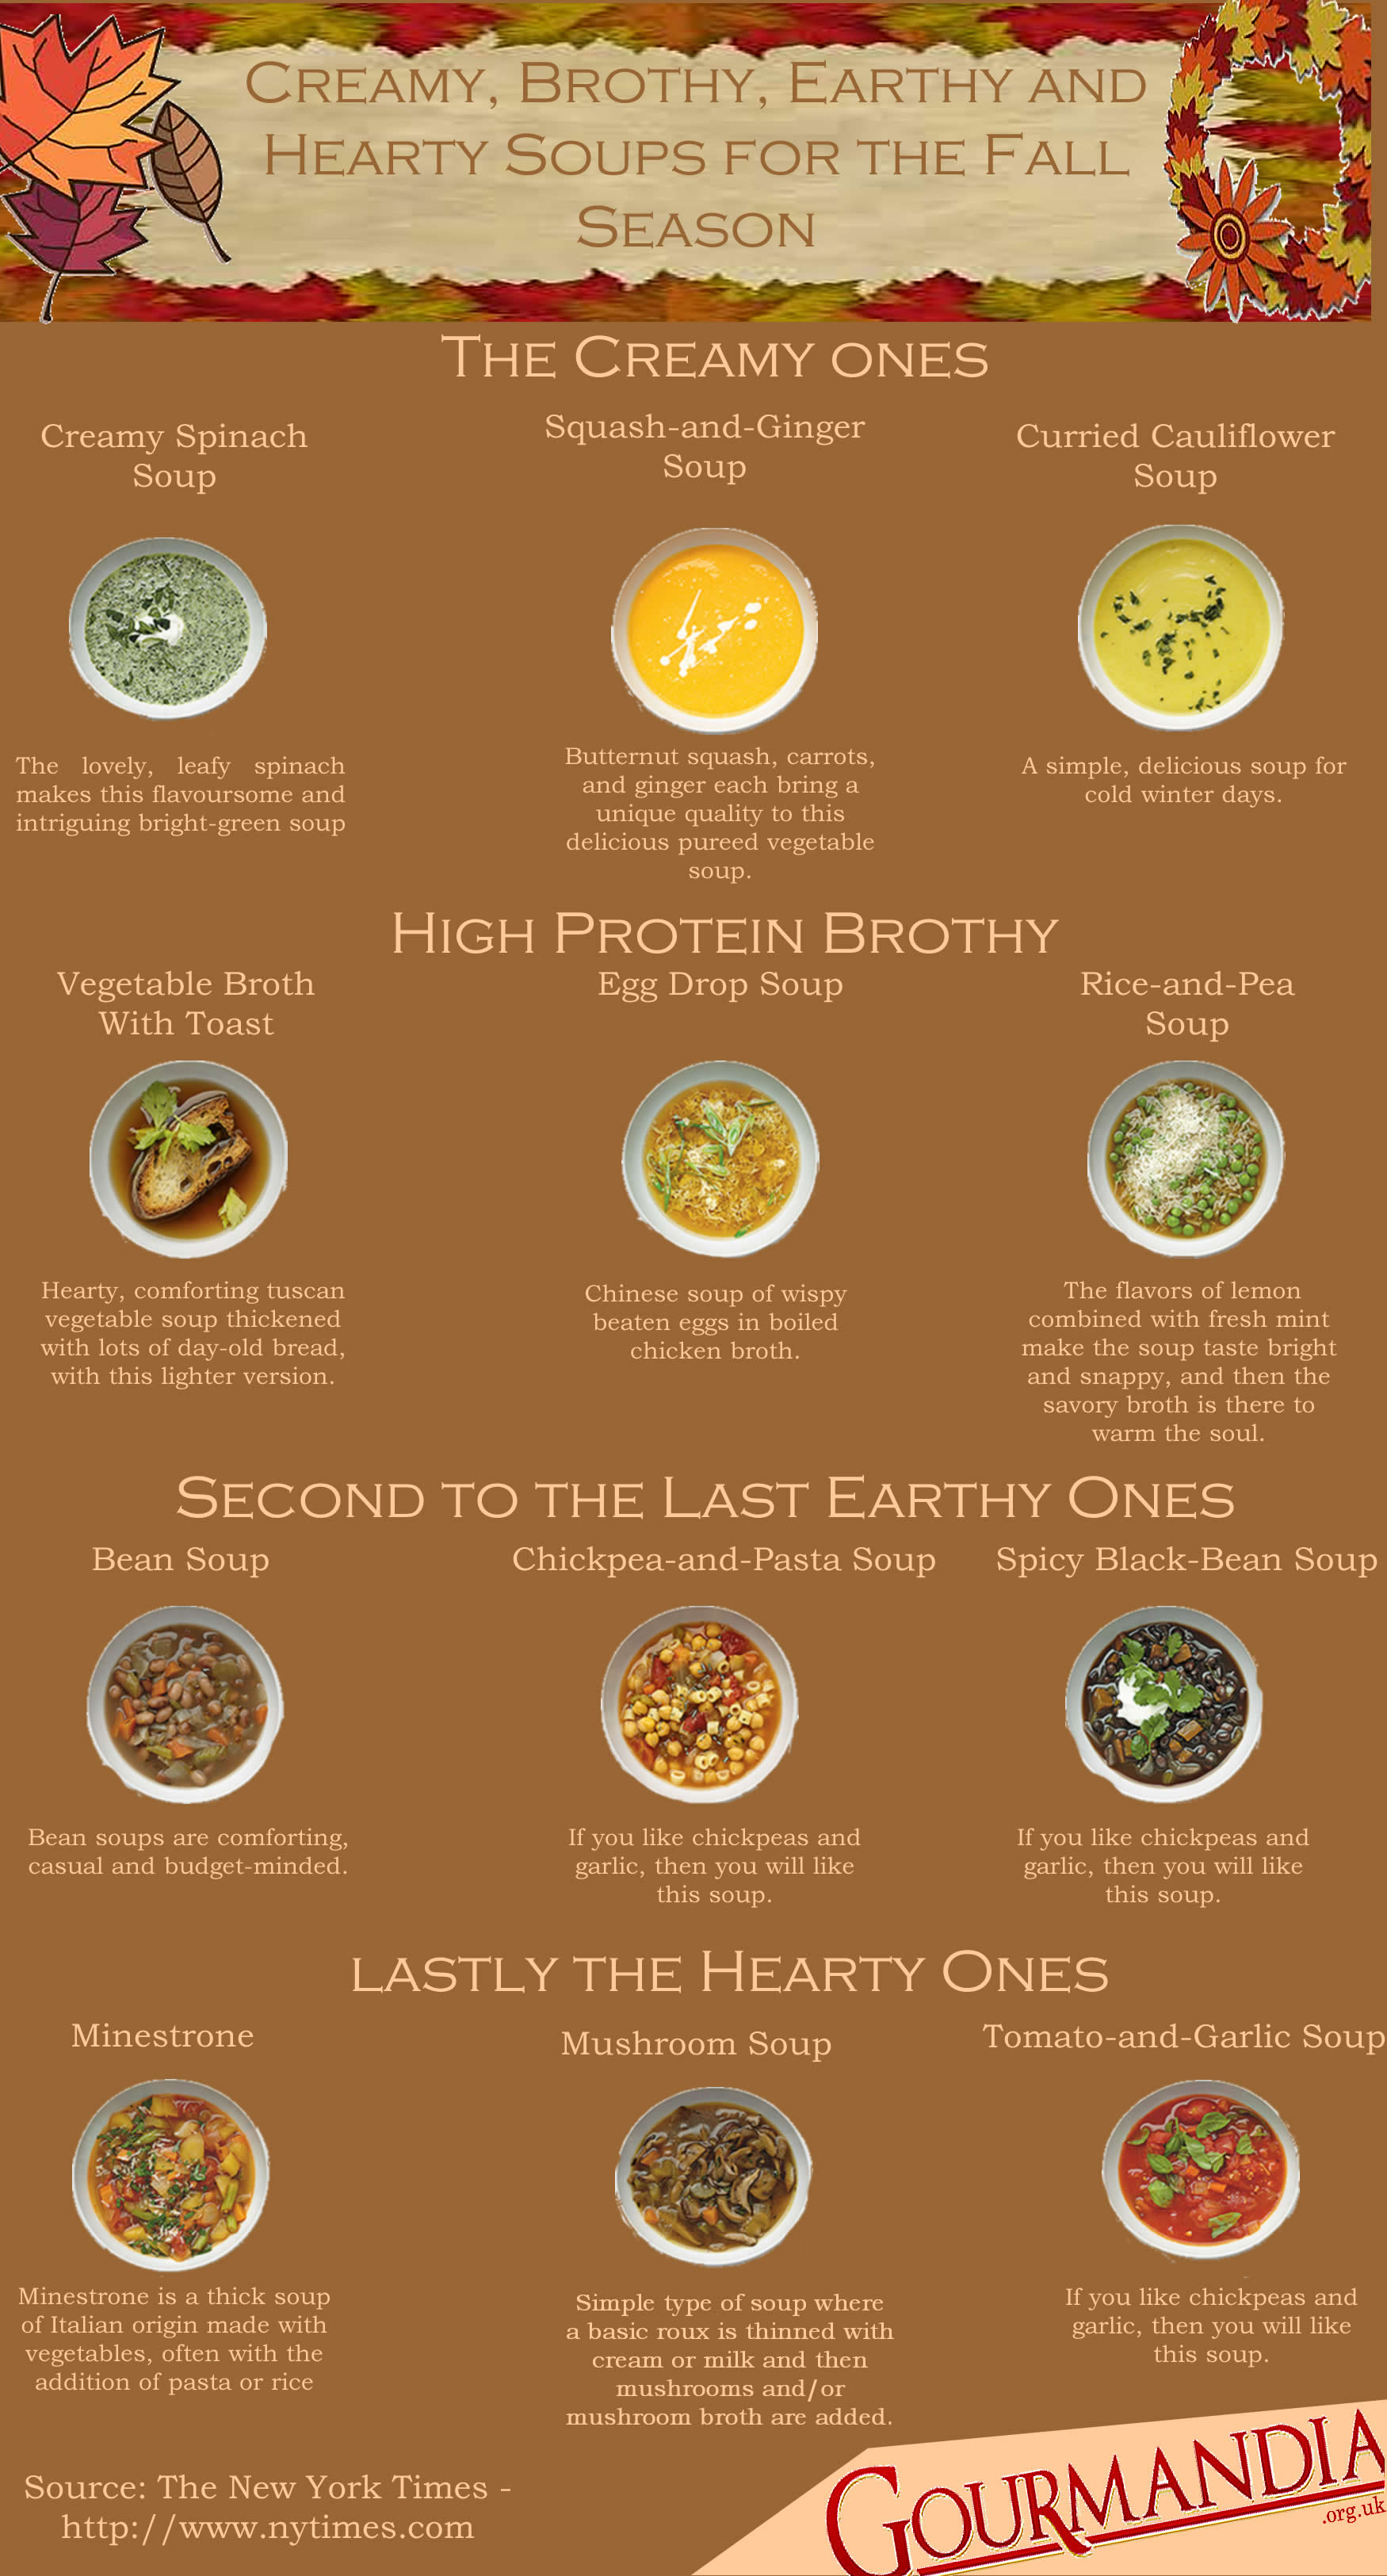 creamy-brothy-earthy-and-hearty-soups-for-the-fall-season_5236c9c2d42a5